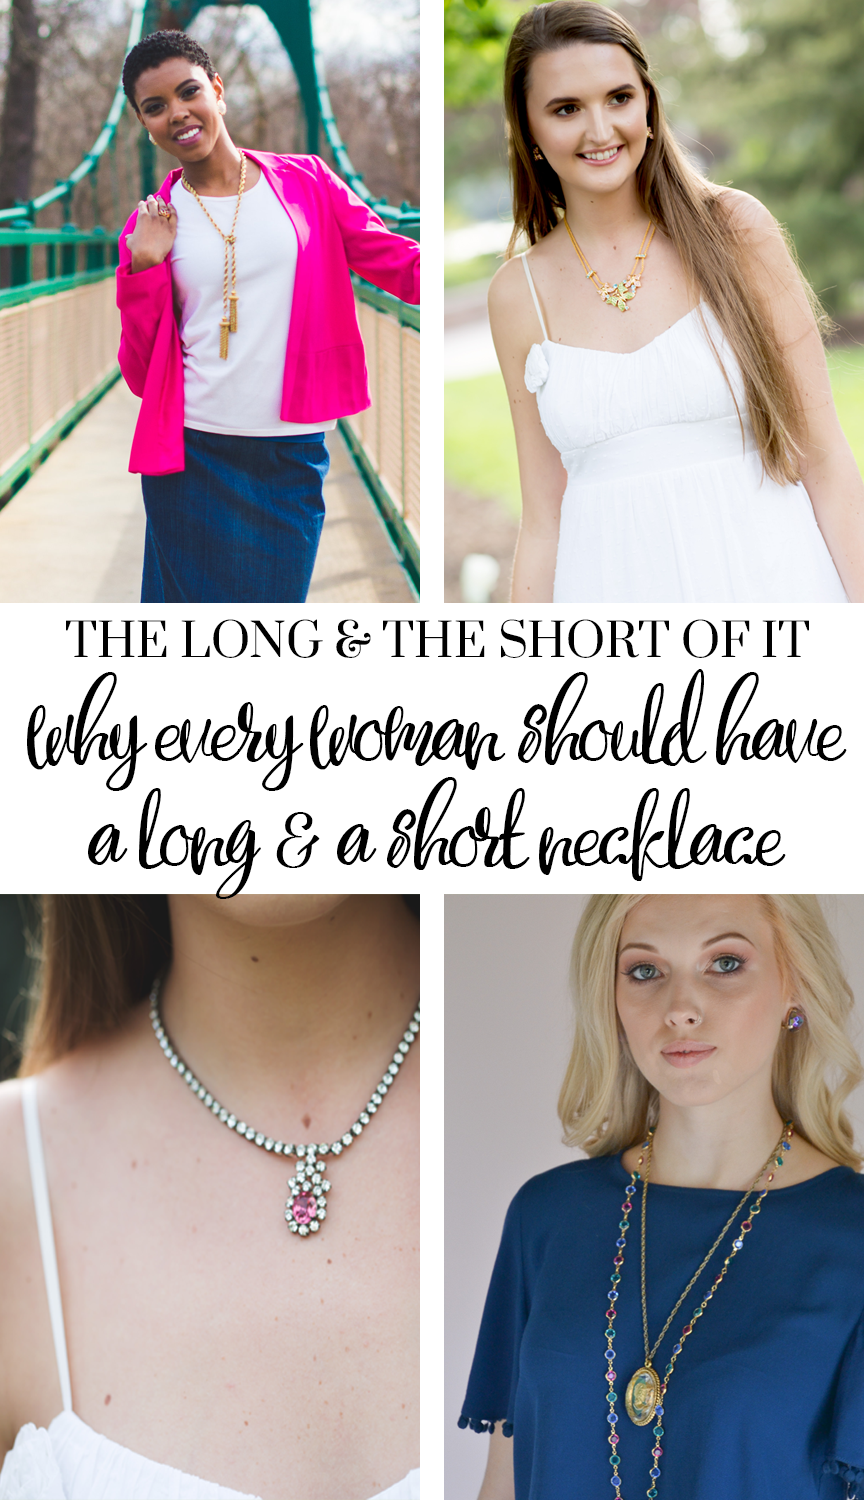 Why every woman should have a long and a short necklace